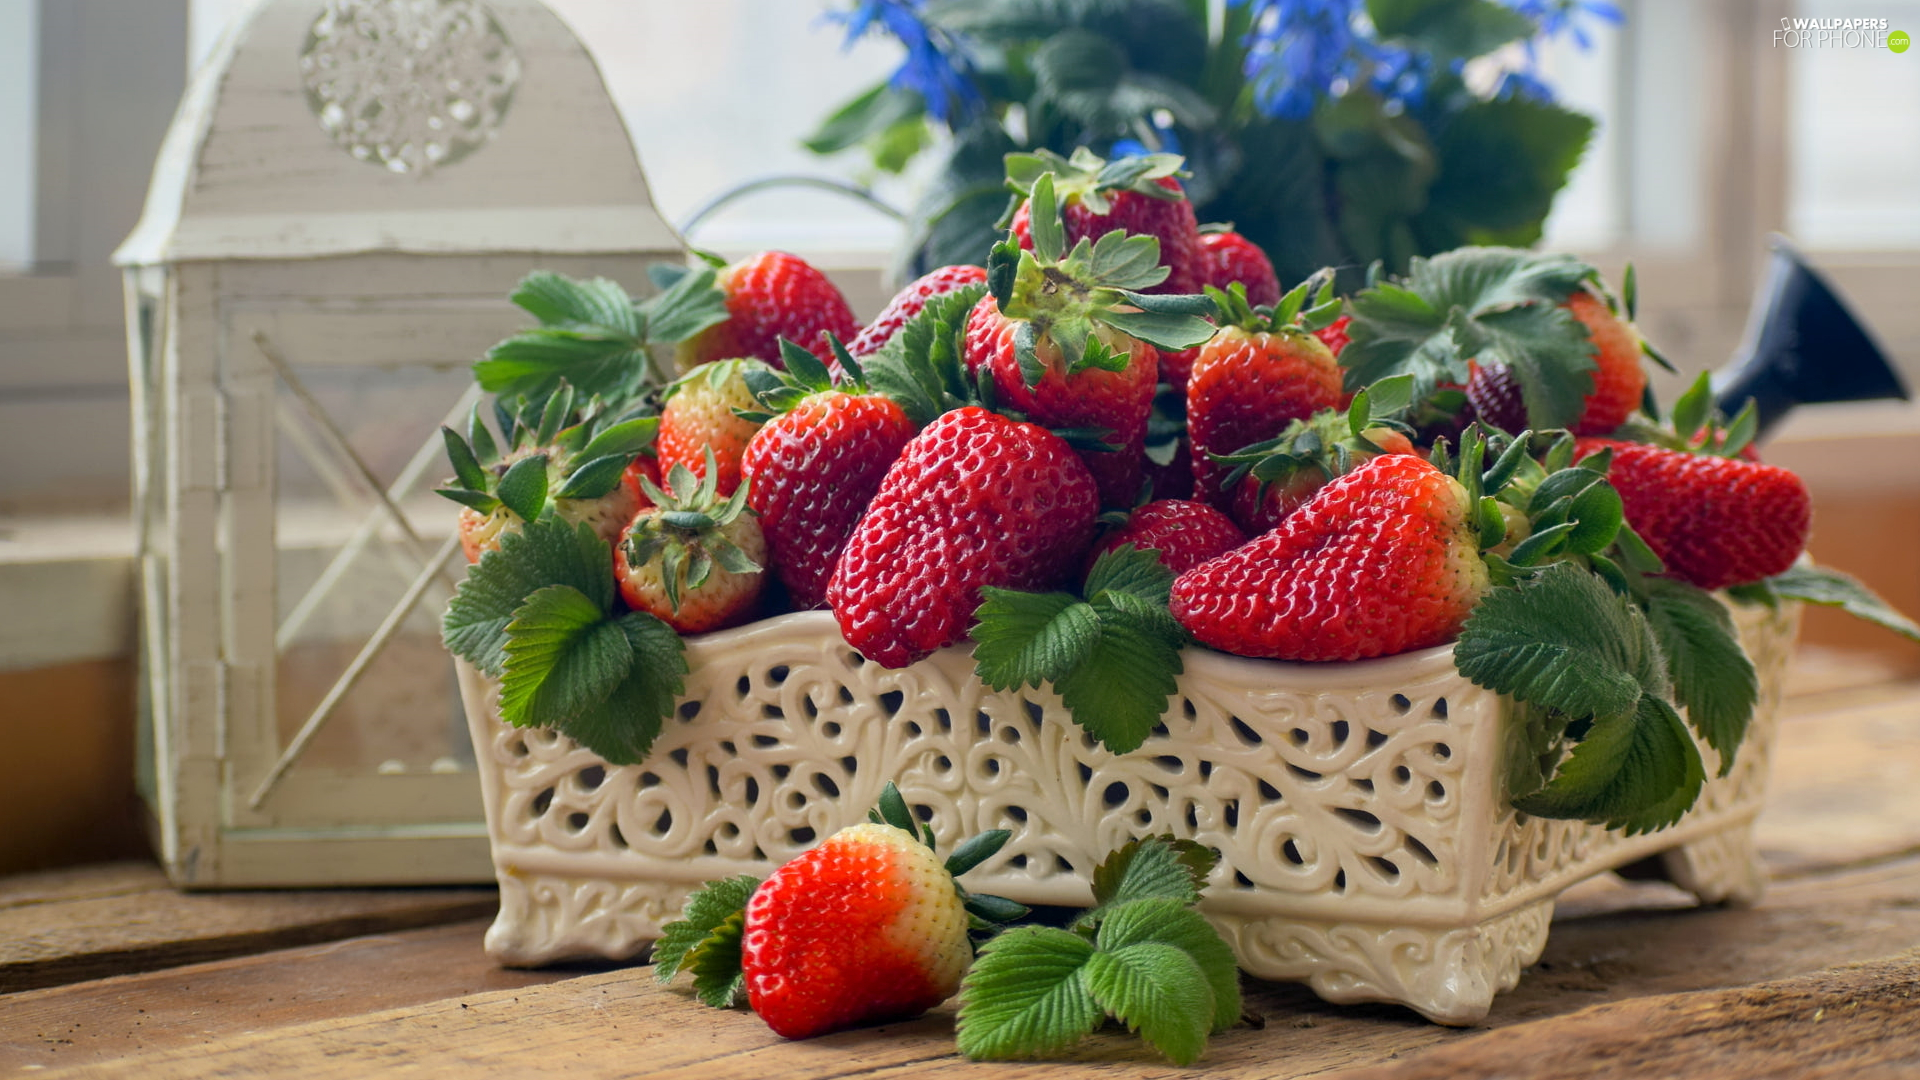 container, Castellated, strawberries, lantern, Mature, bowl